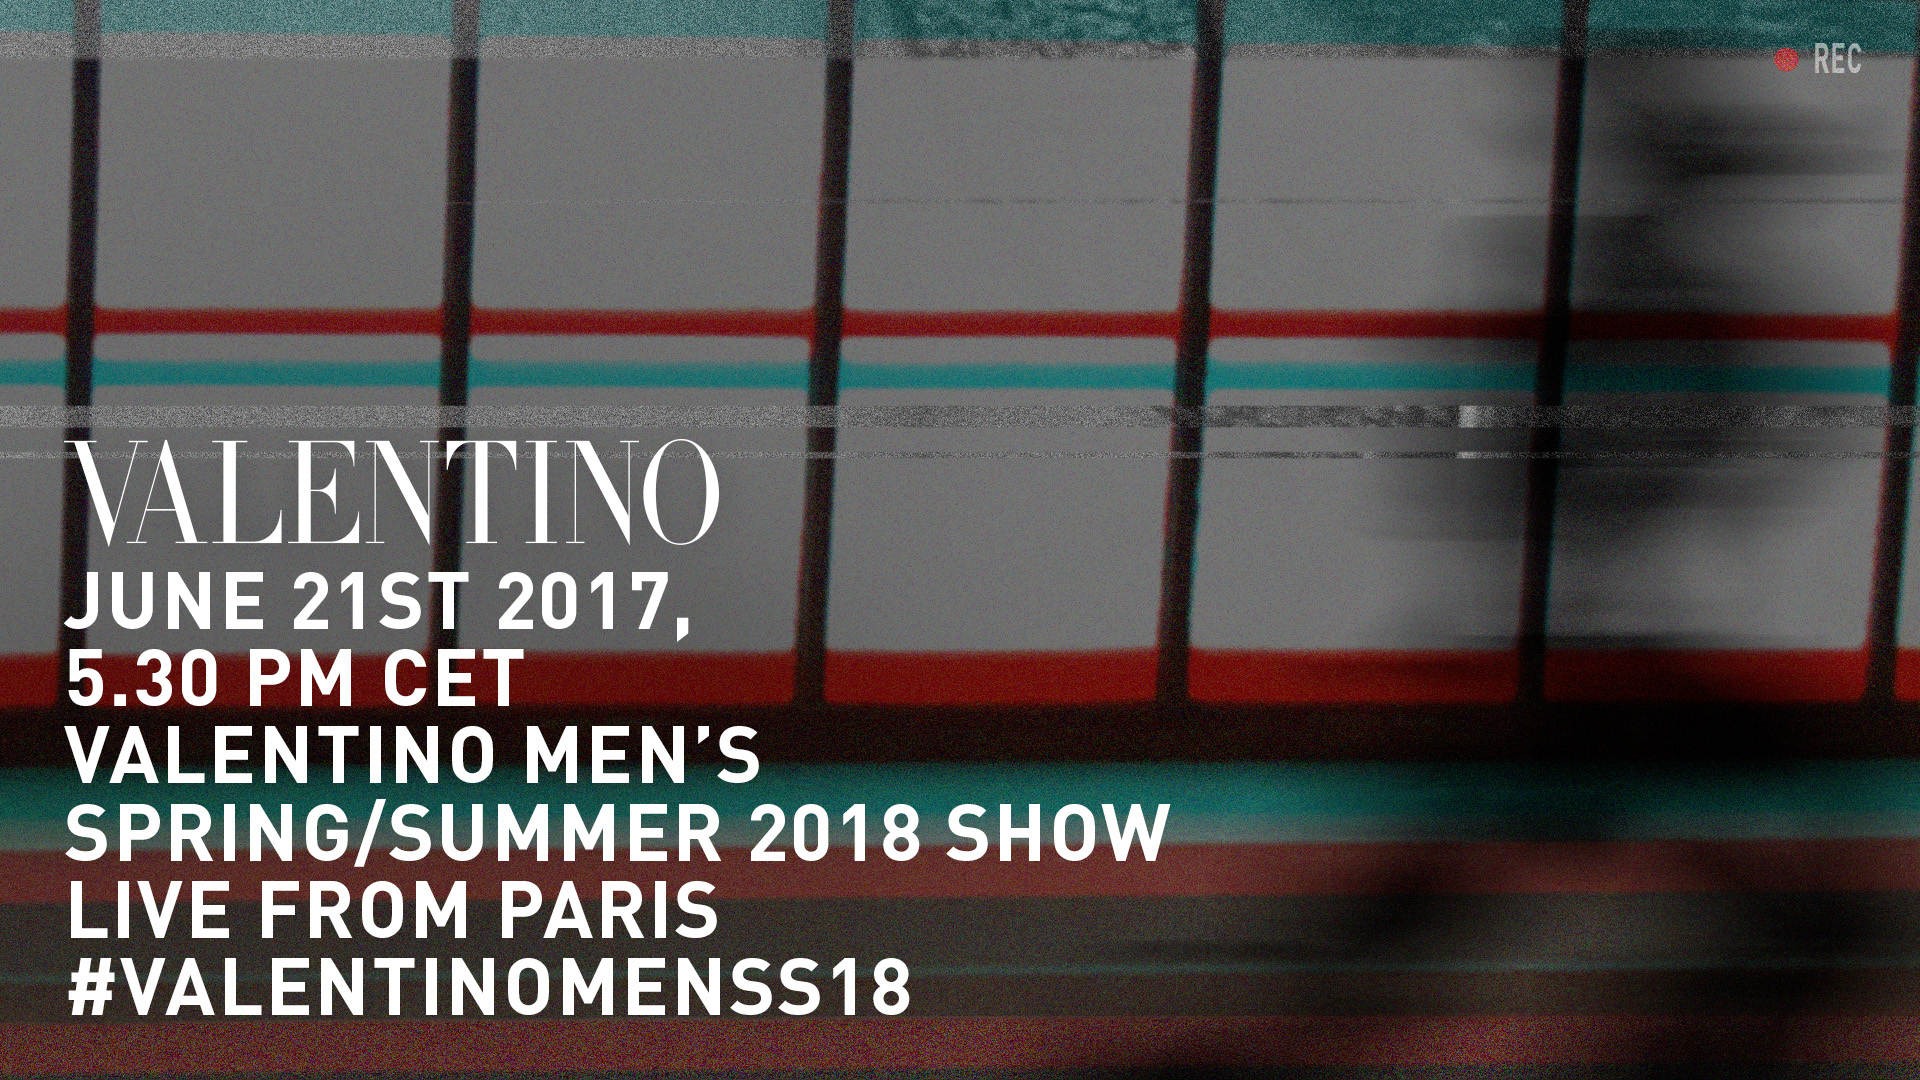 Valentino Men's Spring Summer 2018 Fashion Show Live Streaming Paris